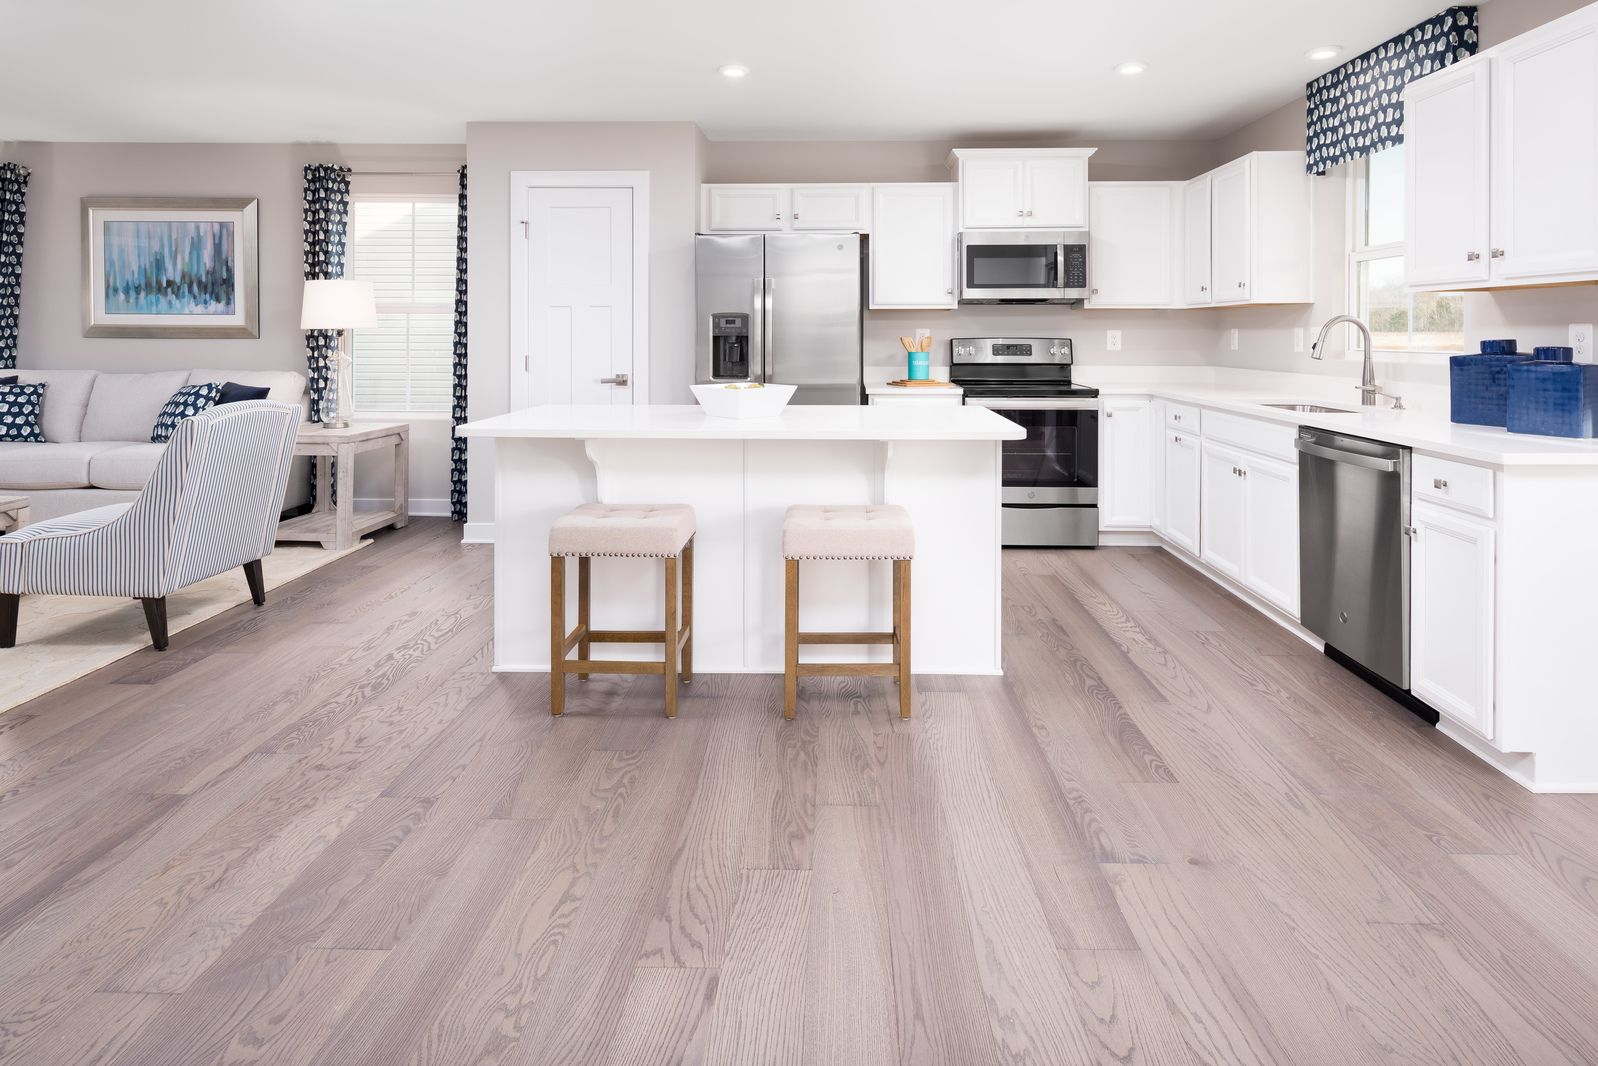 Kitchen featured in the Grand Cayman By Ryan Homes in Dover, DE